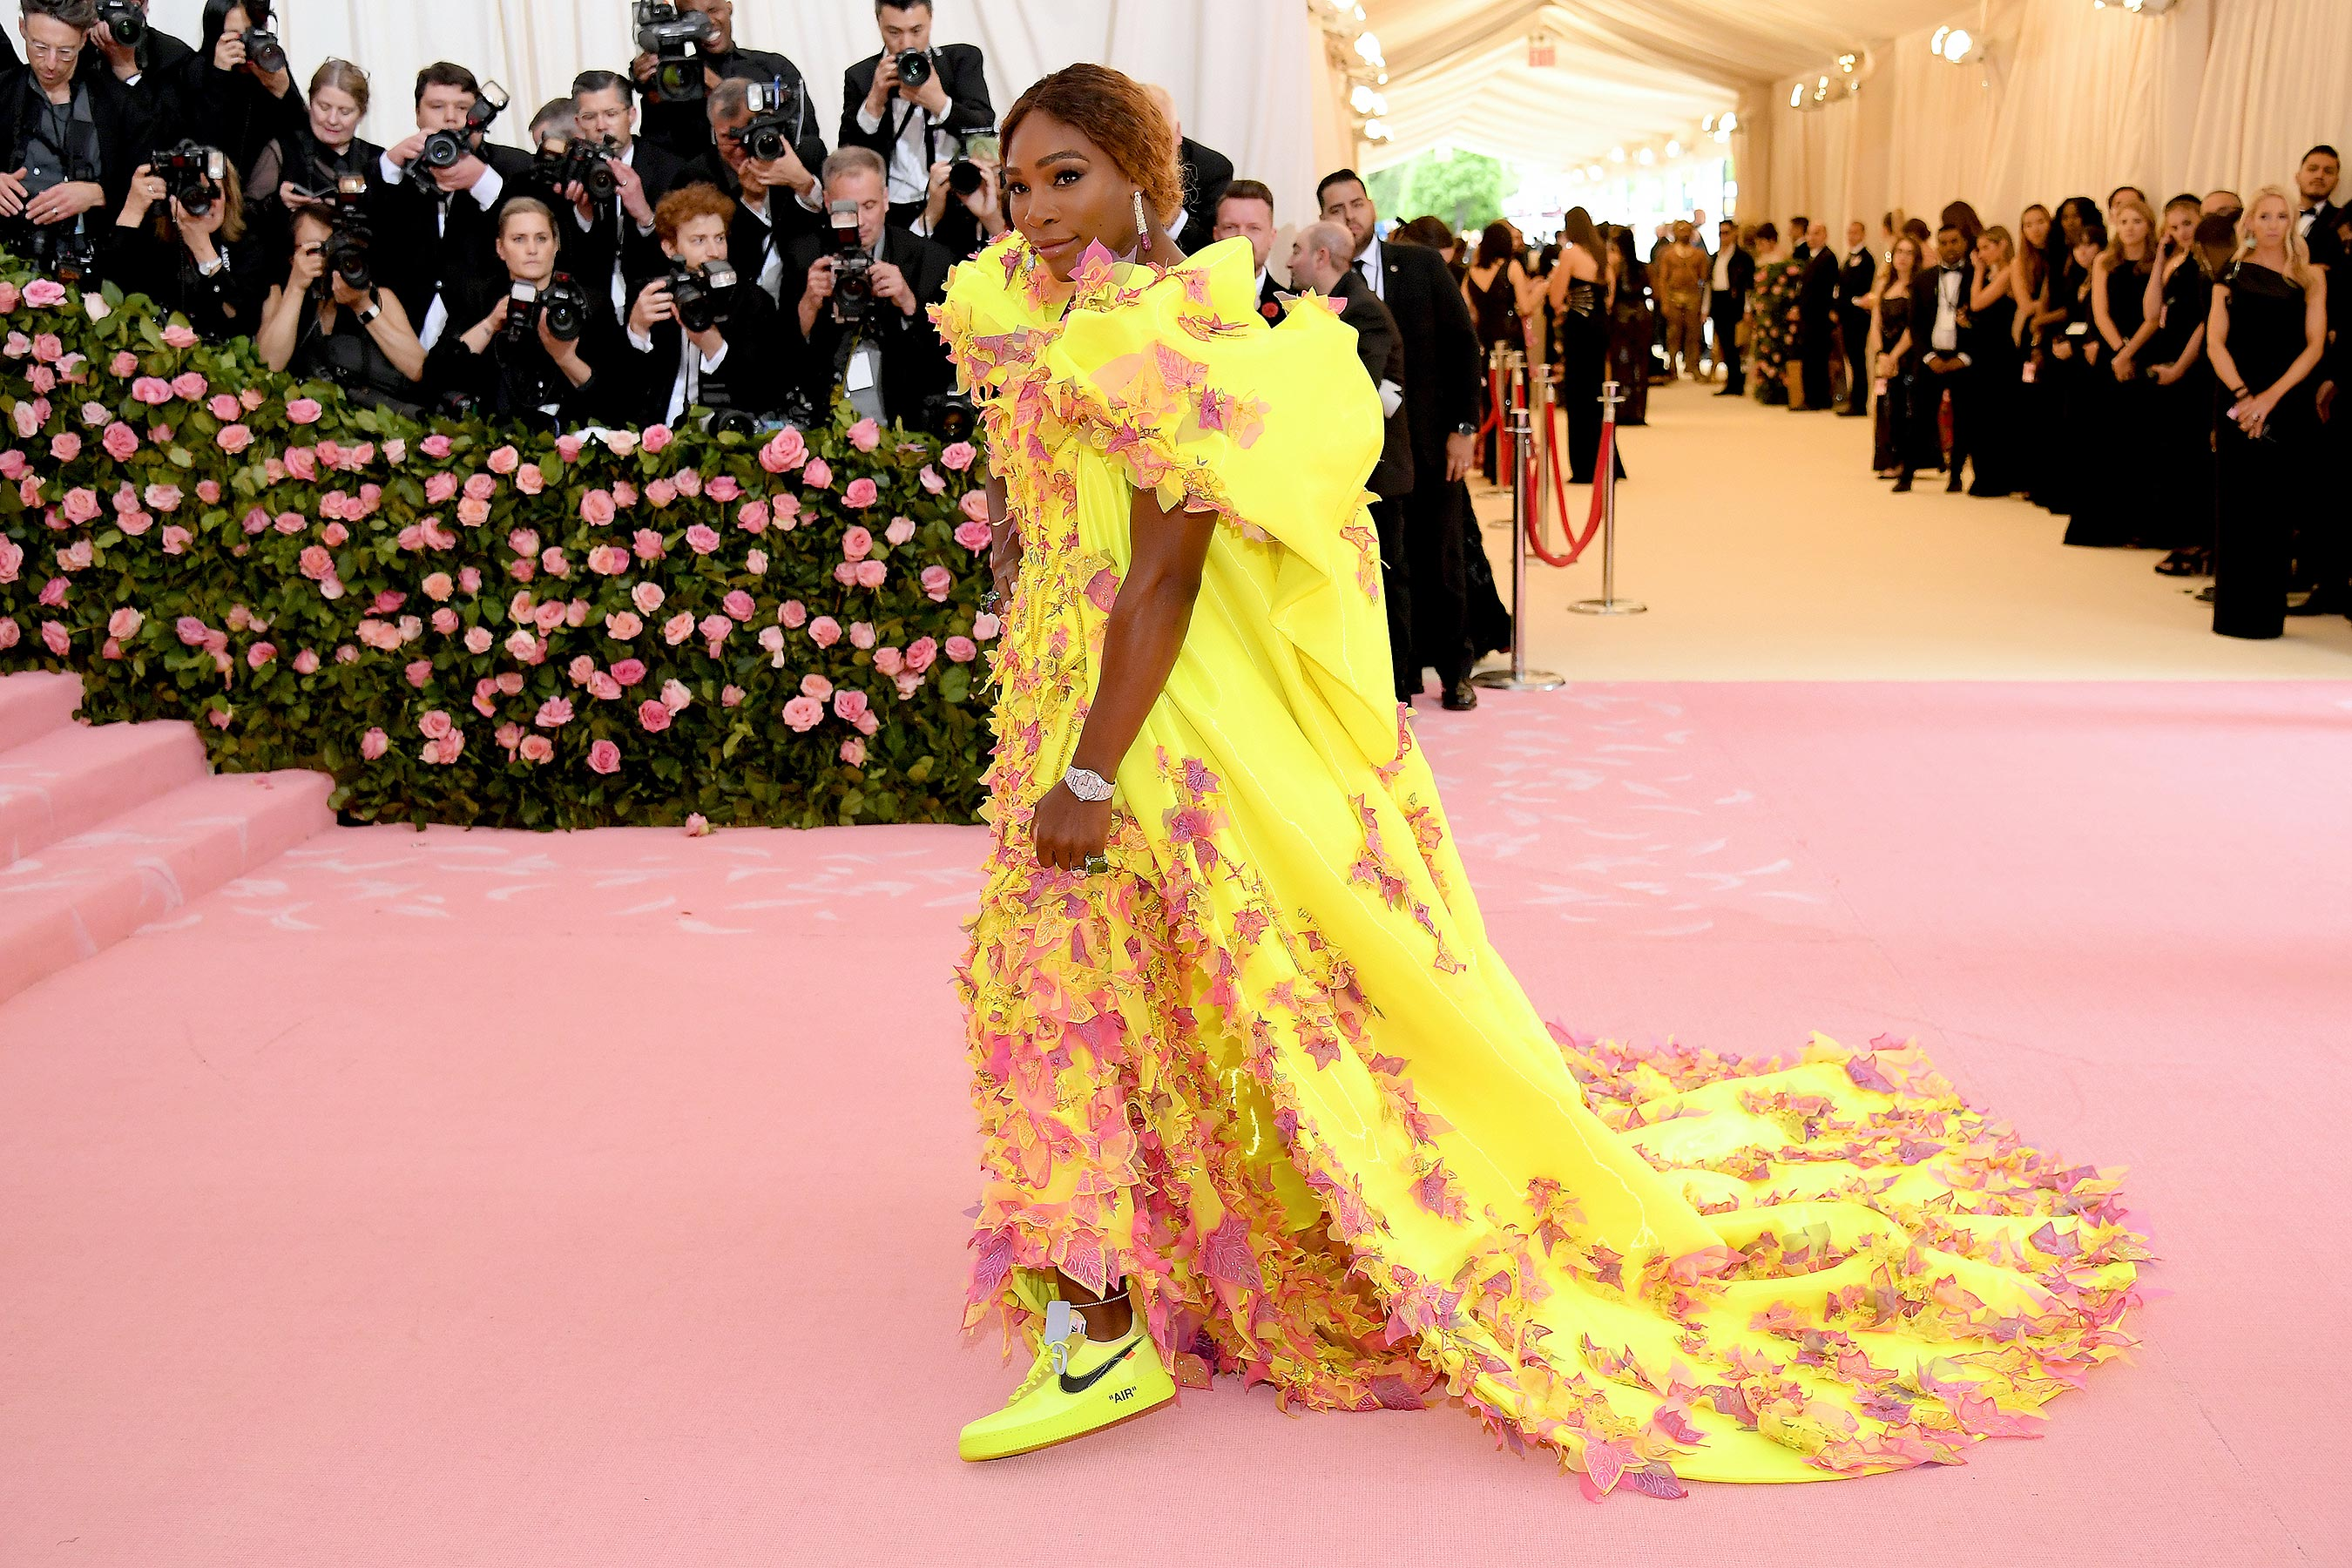 Serena Williams Pairs Designer Sneakers with High-Fashion Gown on pink carpet